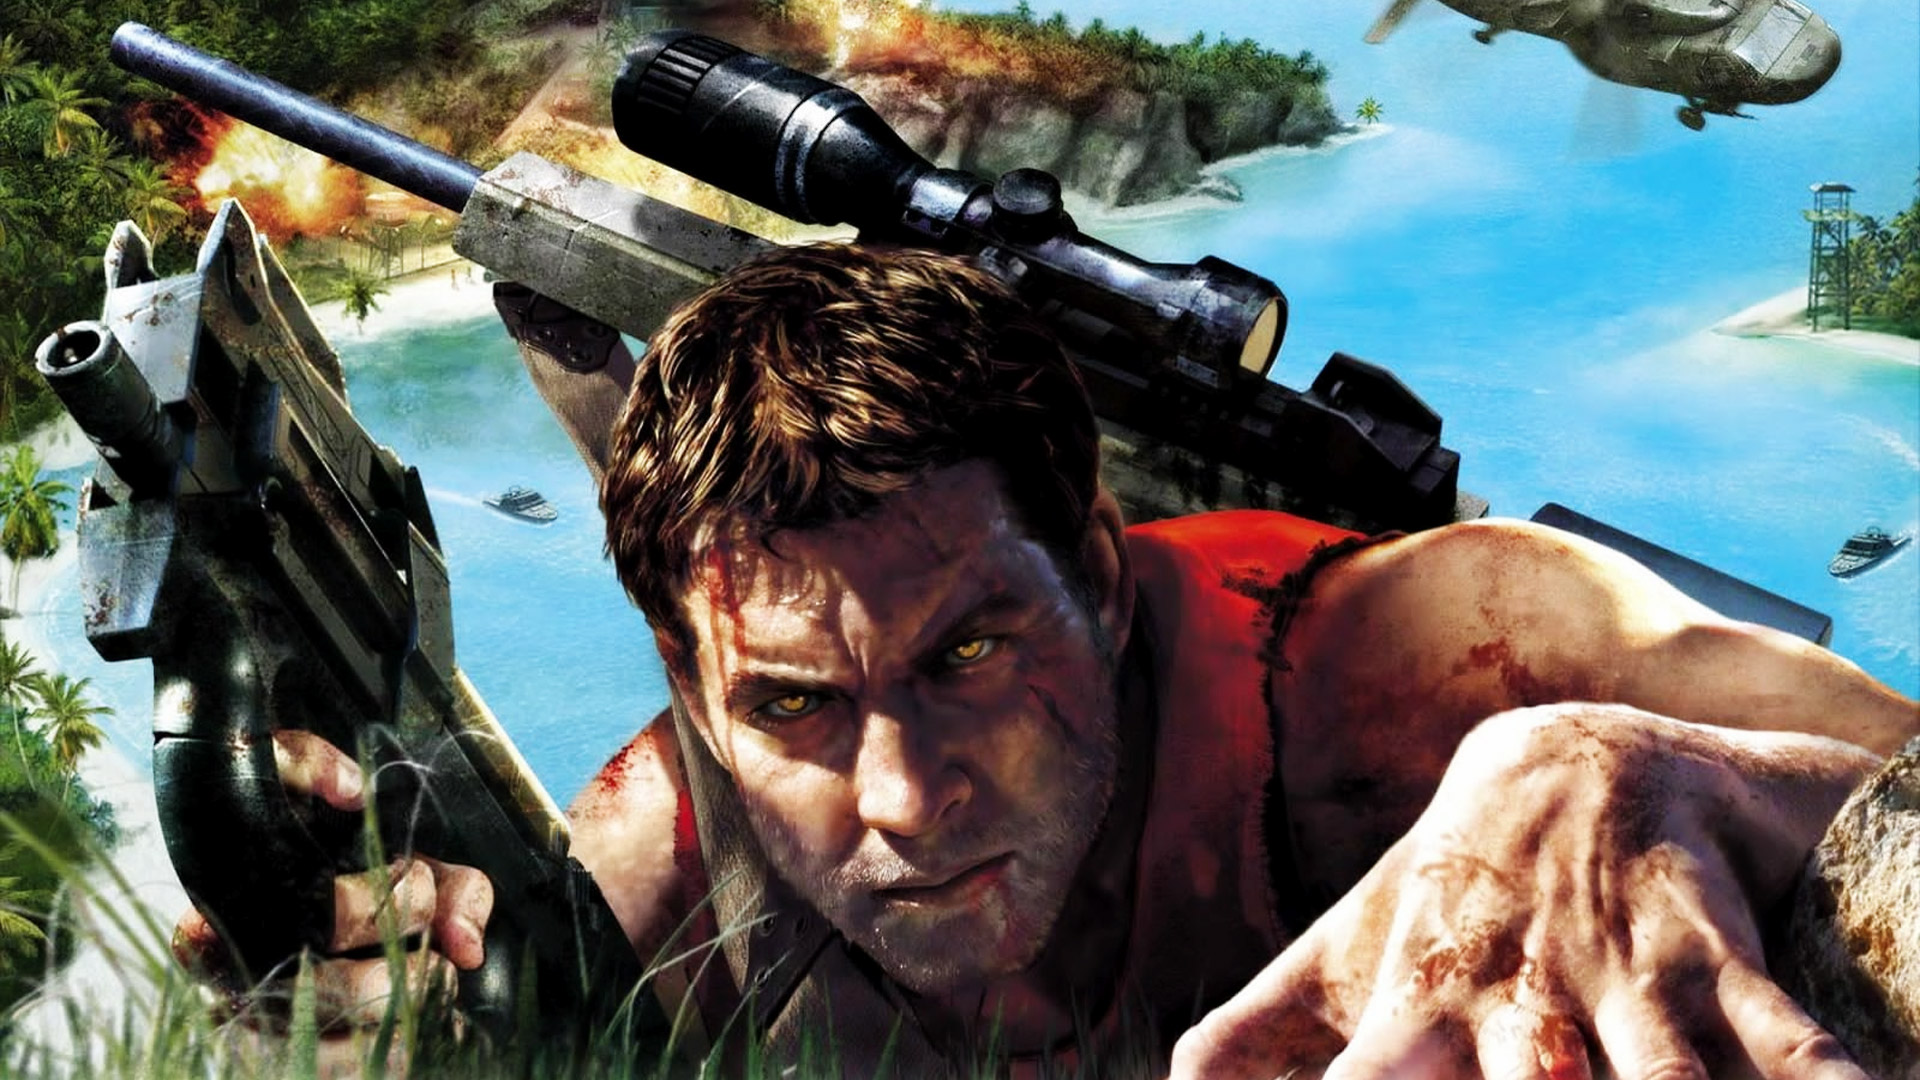 Far Cry Instincts Wallpaper in 1920x1080